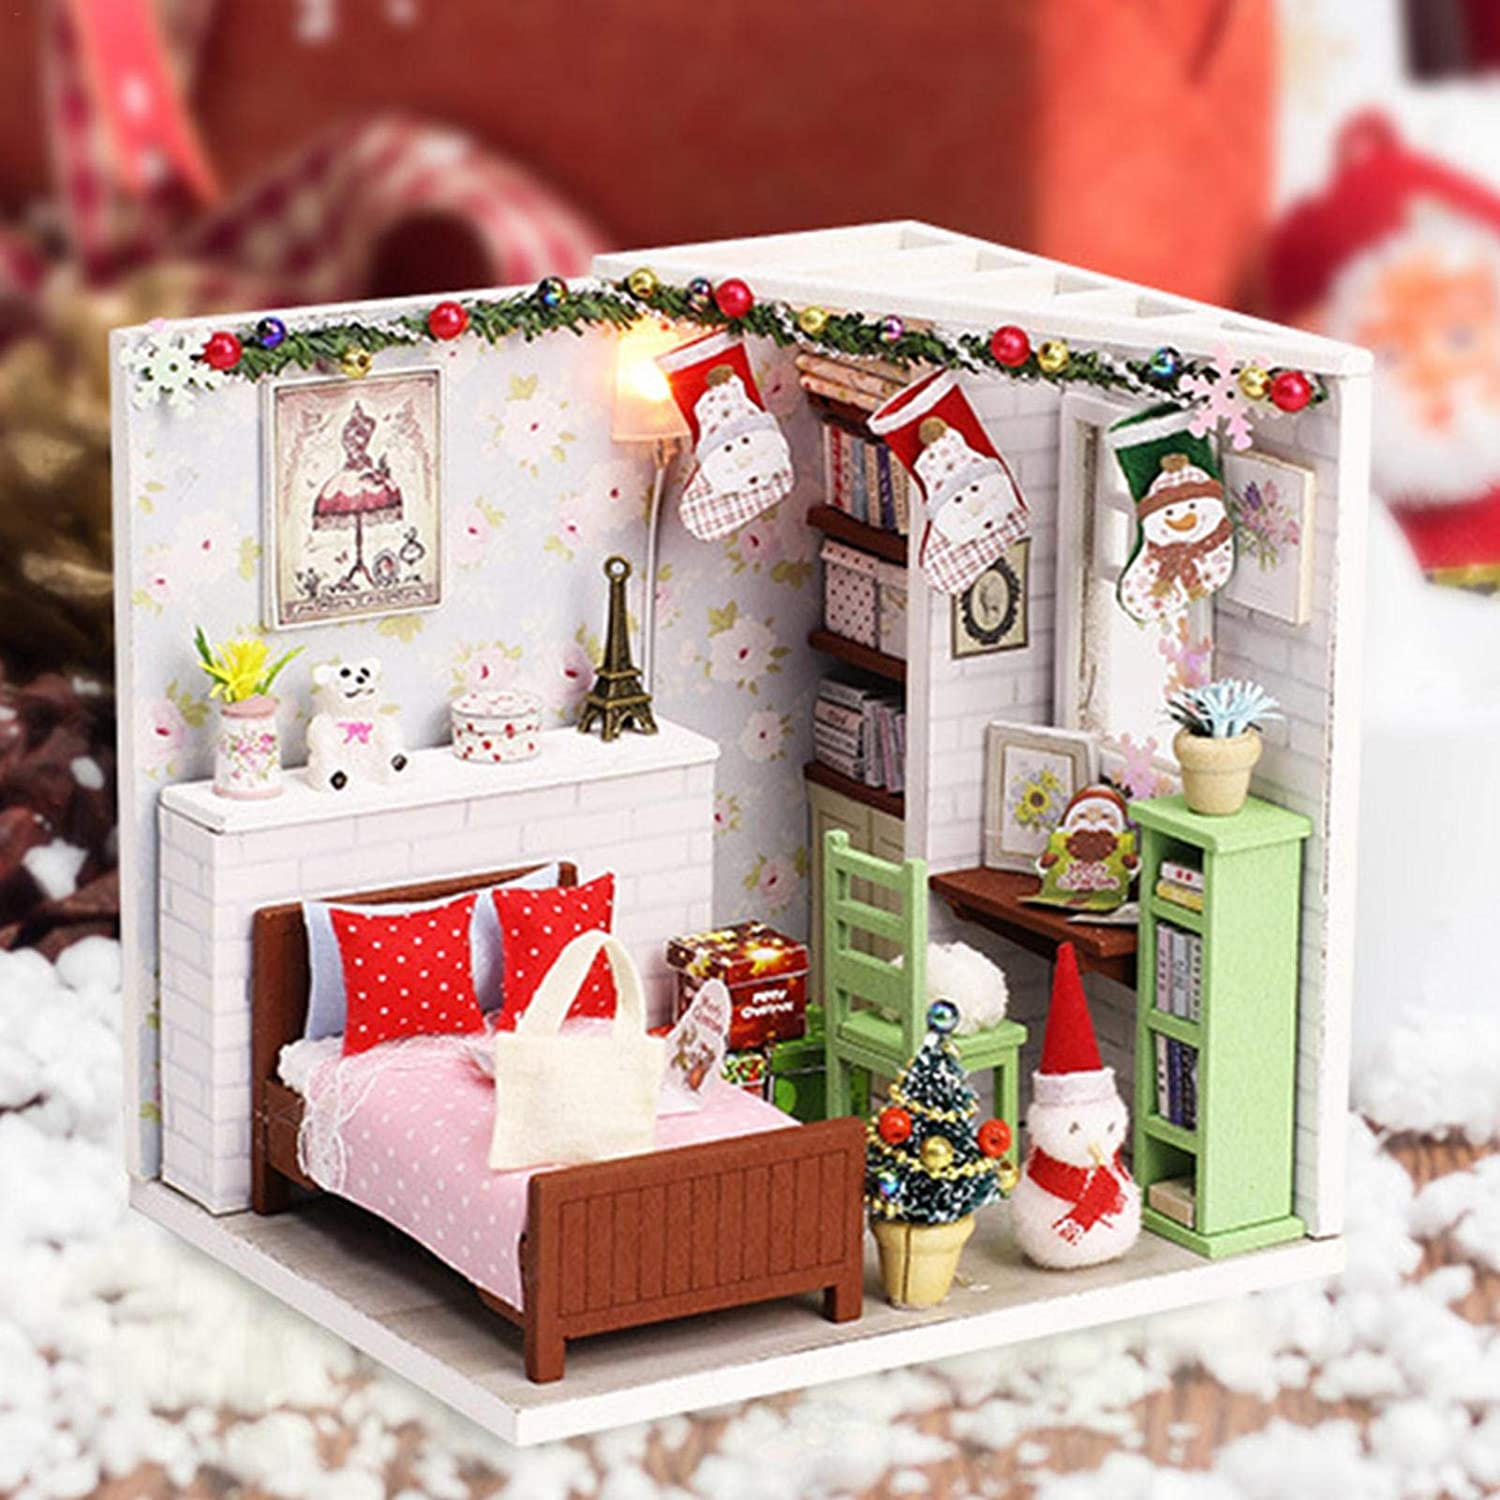 slientC Dollhouse Miniature Kit with Lights and Furnitures DIY House Craft Kits